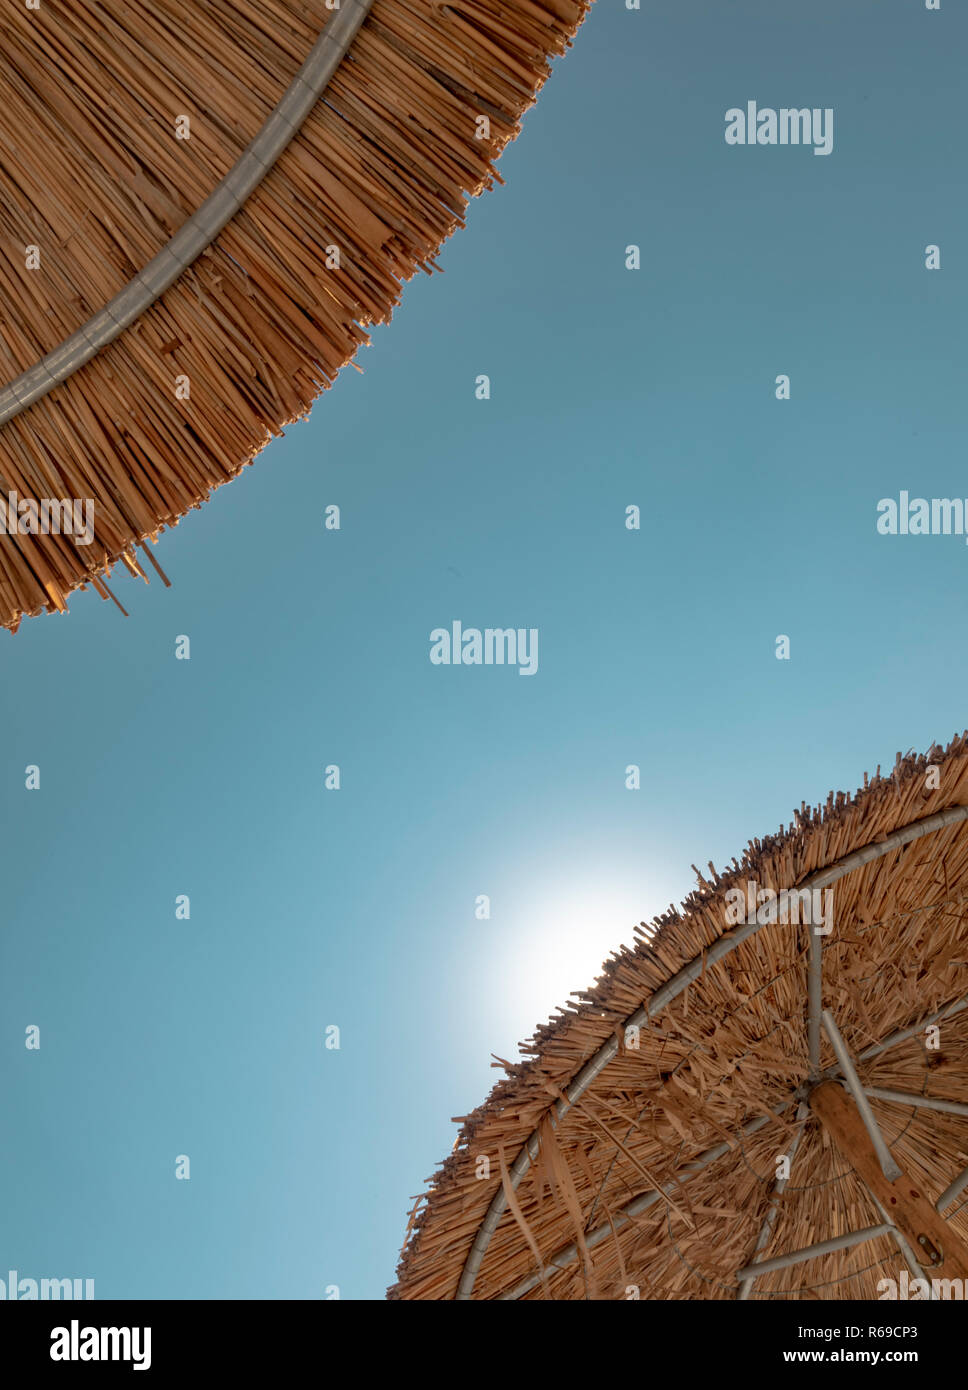 Shot from below of two beach umbrellas made of straw with the sun peaking out from one of them. - Stock Image